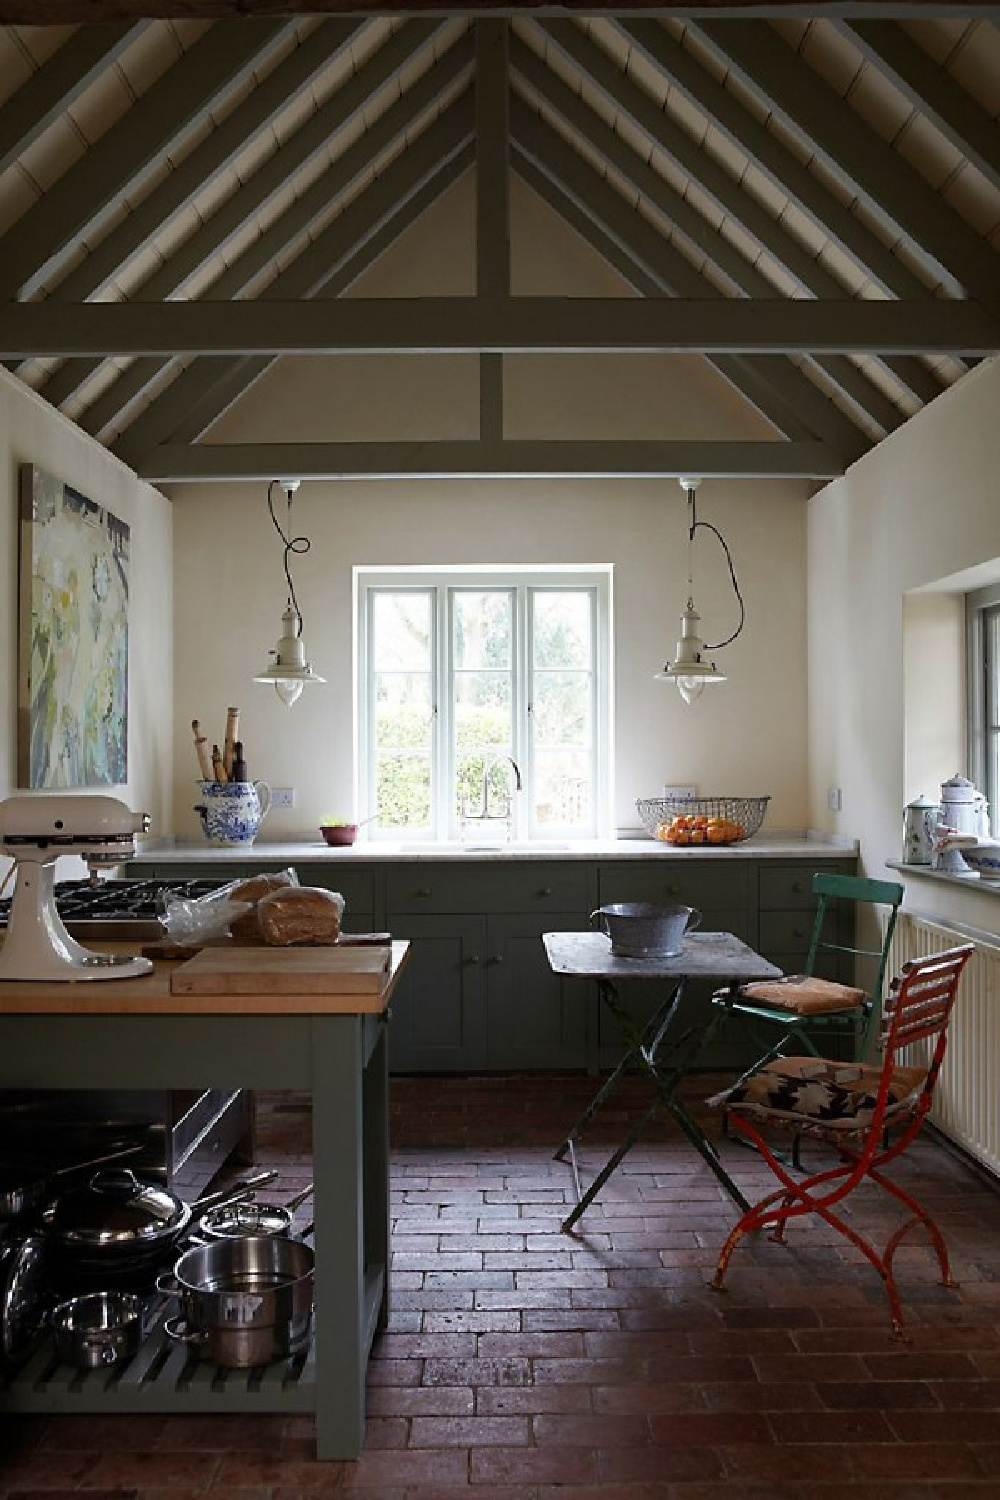 Pointing by Farrow & Ball is a paint color used on the walls of this English country kitchen with rustic ceiling trusses and farmhouse pendants. #pointing #farrowandball #paintcolors #calmpaintcolors #interiordesign